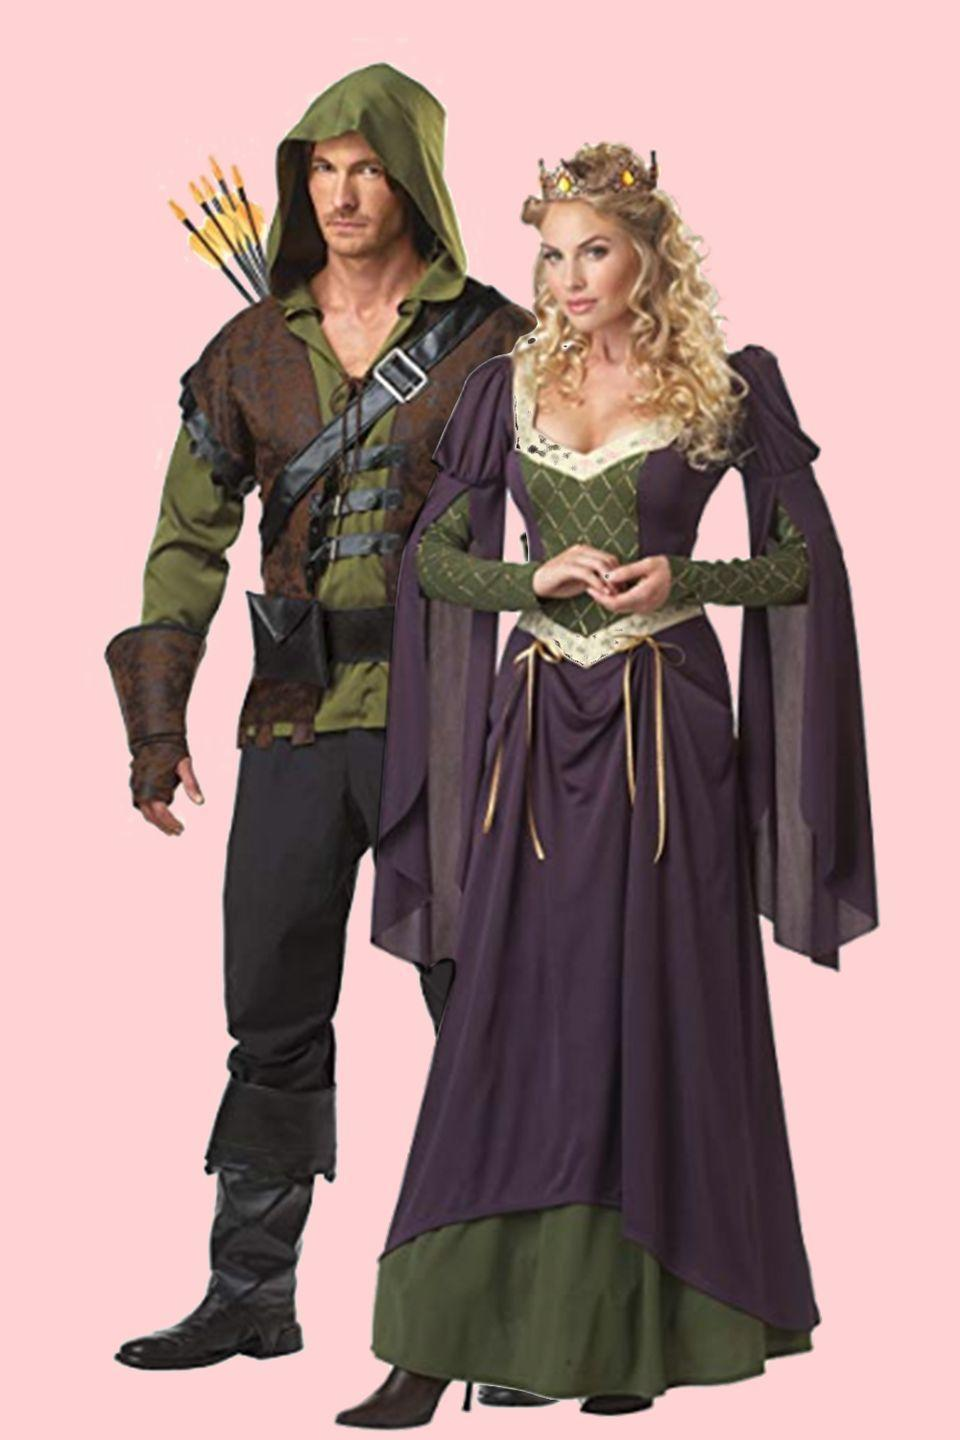 """<p>This famous pair is immediately recognizable while trick-or-treating, especially if Robin Hood carries around a toy bow and arrow.</p><p><a class=""""link rapid-noclick-resp"""" href=""""https://www.amazon.com/California-Costumes-Robin-Adult-Costume/dp/B004UUJMKU/?tag=syn-yahoo-20&ascsubtag=%5Bartid%7C10055.g.2625%5Bsrc%7Cyahoo-us"""" rel=""""nofollow noopener"""" target=""""_blank"""" data-ylk=""""slk:SHOP ROBIN HOOD COSTUME"""">SHOP ROBIN HOOD COSTUME</a></p><p> <a class=""""link rapid-noclick-resp"""" href=""""https://www.amazon.com/California-Costumes-Womens-Waiting-Purple/dp/B0091K98QW?th=1&psc=1&tag=syn-yahoo-20&ascsubtag=%5Bartid%7C10055.g.2625%5Bsrc%7Cyahoo-us"""" rel=""""nofollow noopener"""" target=""""_blank"""" data-ylk=""""slk:SHOP MAID MARIAN COSTUME"""">SHOP MAID MARIAN COSTUME</a> </p>"""